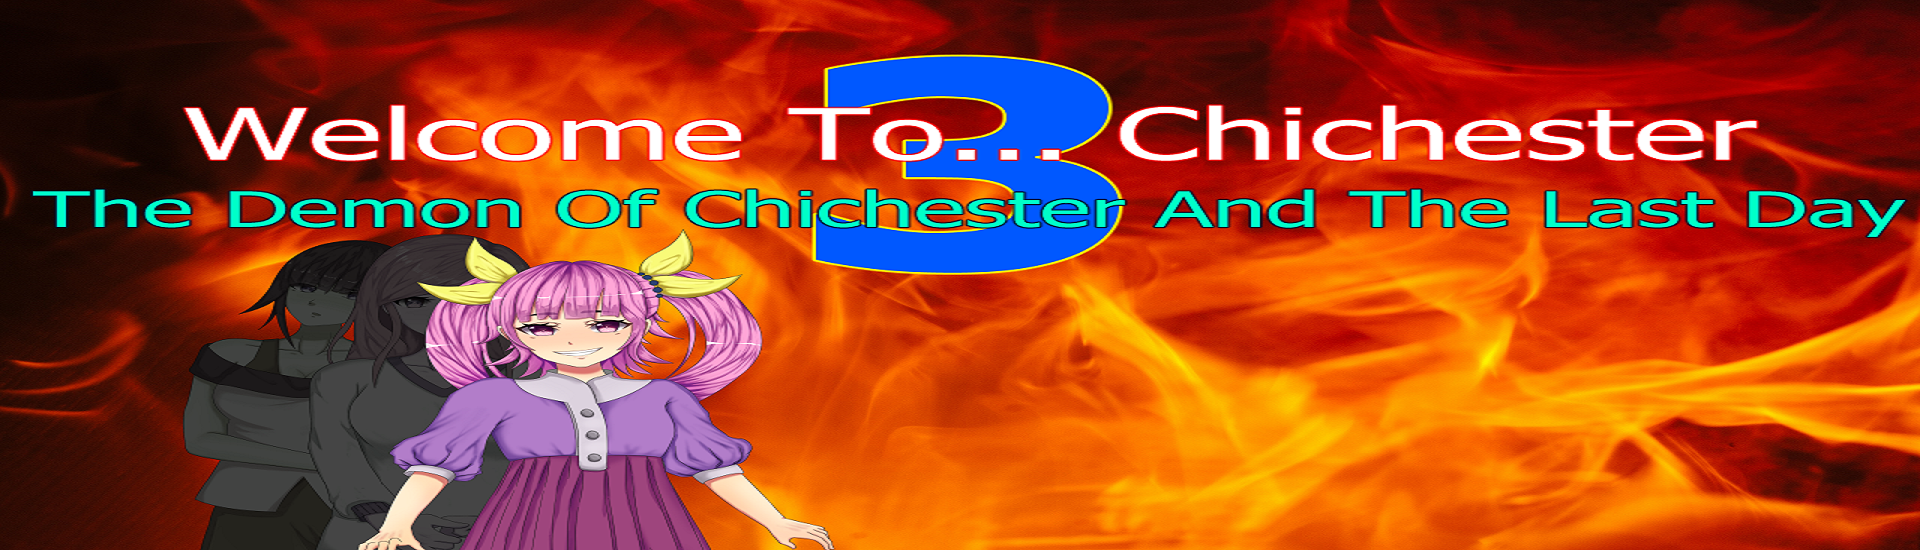 Welcome To... Chichester 3 : The Demon Of Chichester And The Last Day cover